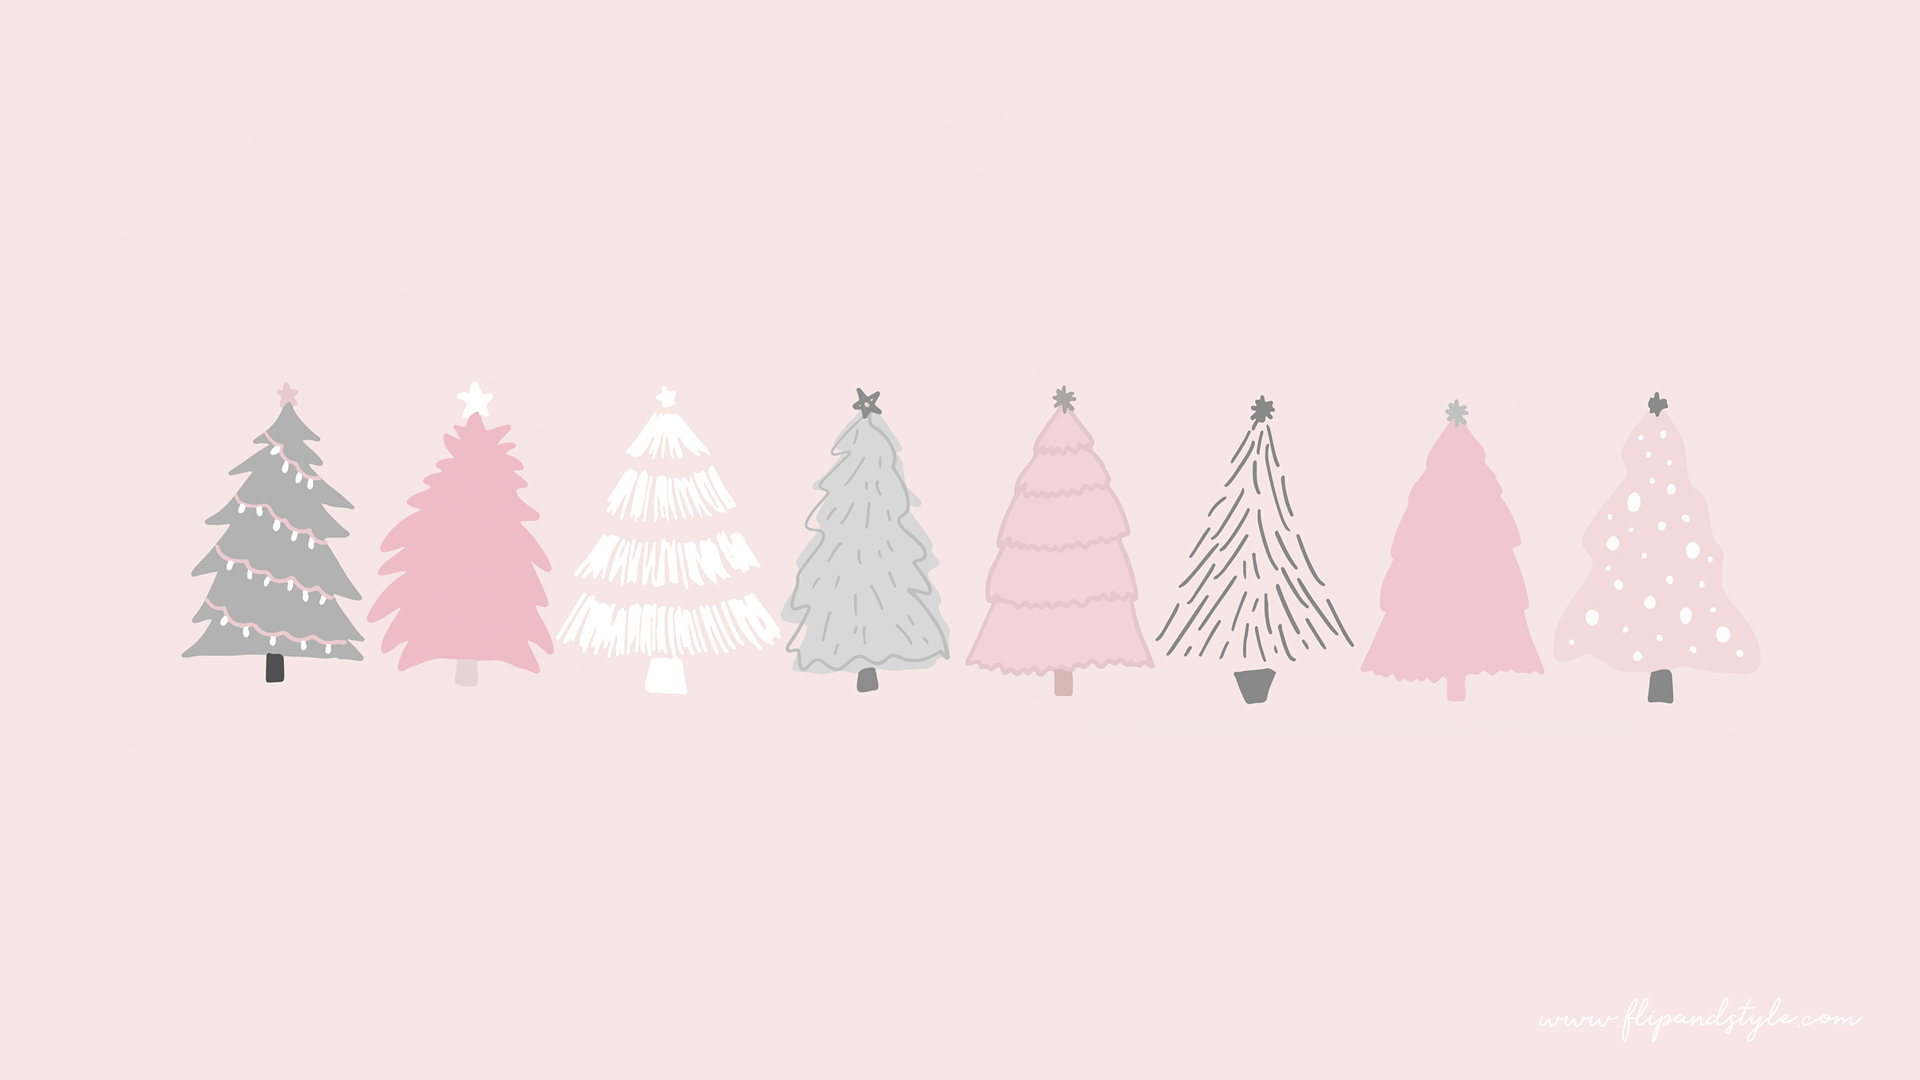 Free Wallpapers Backgrounds Christmas Festive By Flip And Style Cute Christmas Wallpaper Free Wallpaper Backgrounds Christmas Desktop Wallpaper